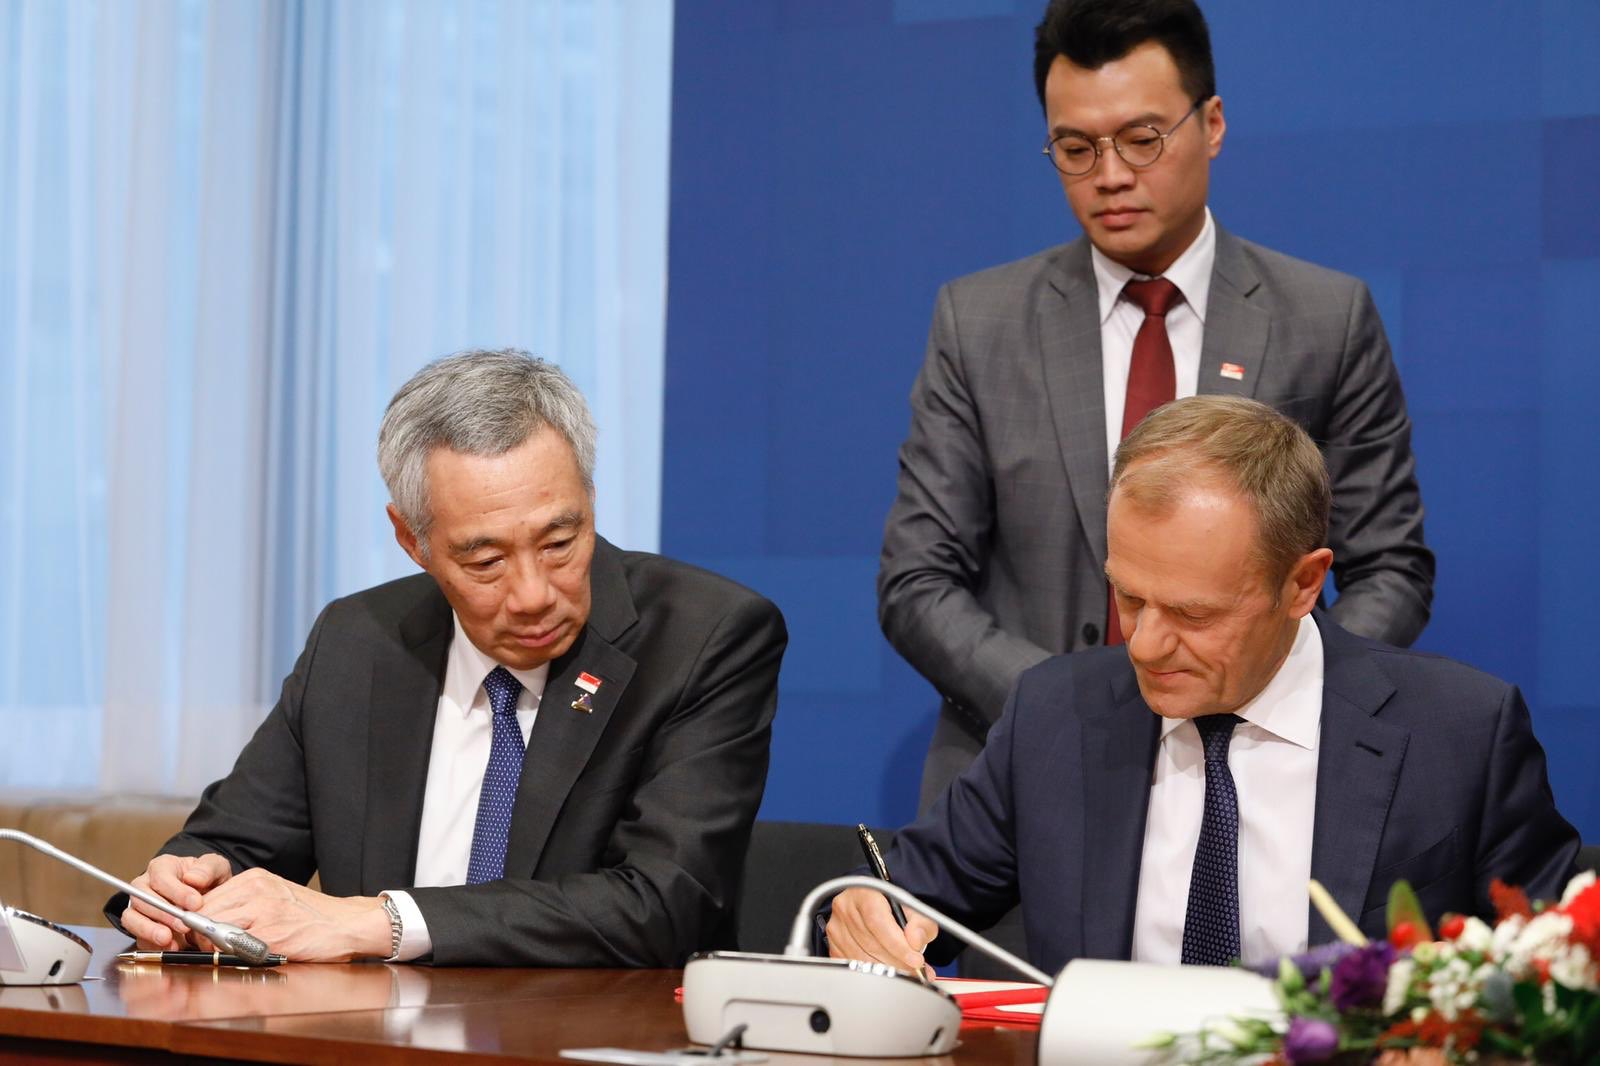 Representatives of the EU and Singapore signing the free trade agreement